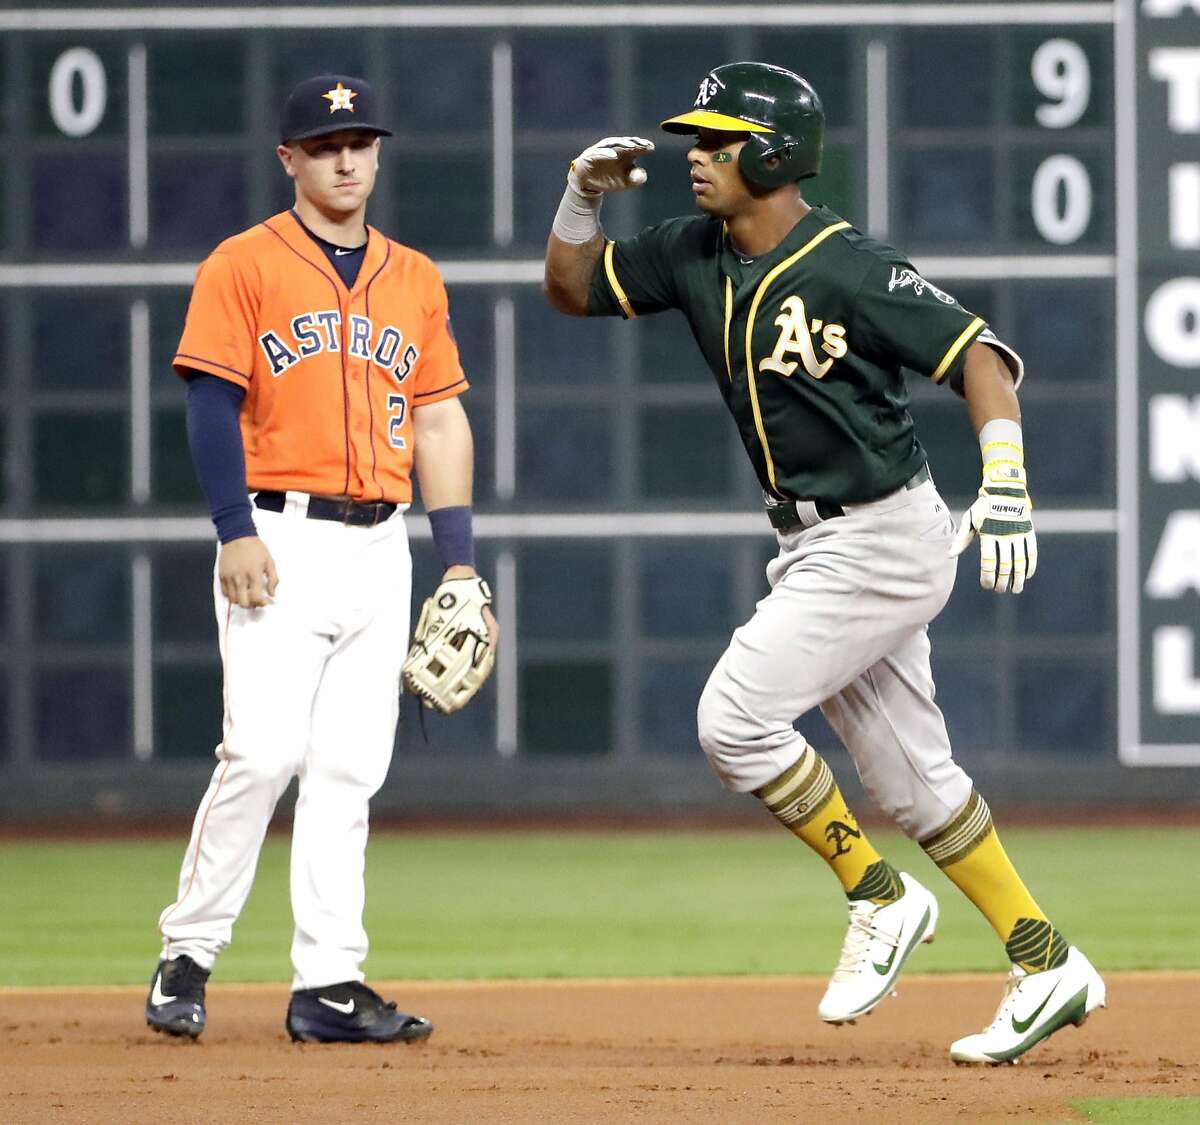 Oakland Athletics' Khris Davis, right, celebrates his three-run home run as he runs past Houston Astros third baseman Alex Bregman (2) during the first inning of a baseball game Friday, April 28, 2017, in Houston. (AP Photo/David J. Phillip)